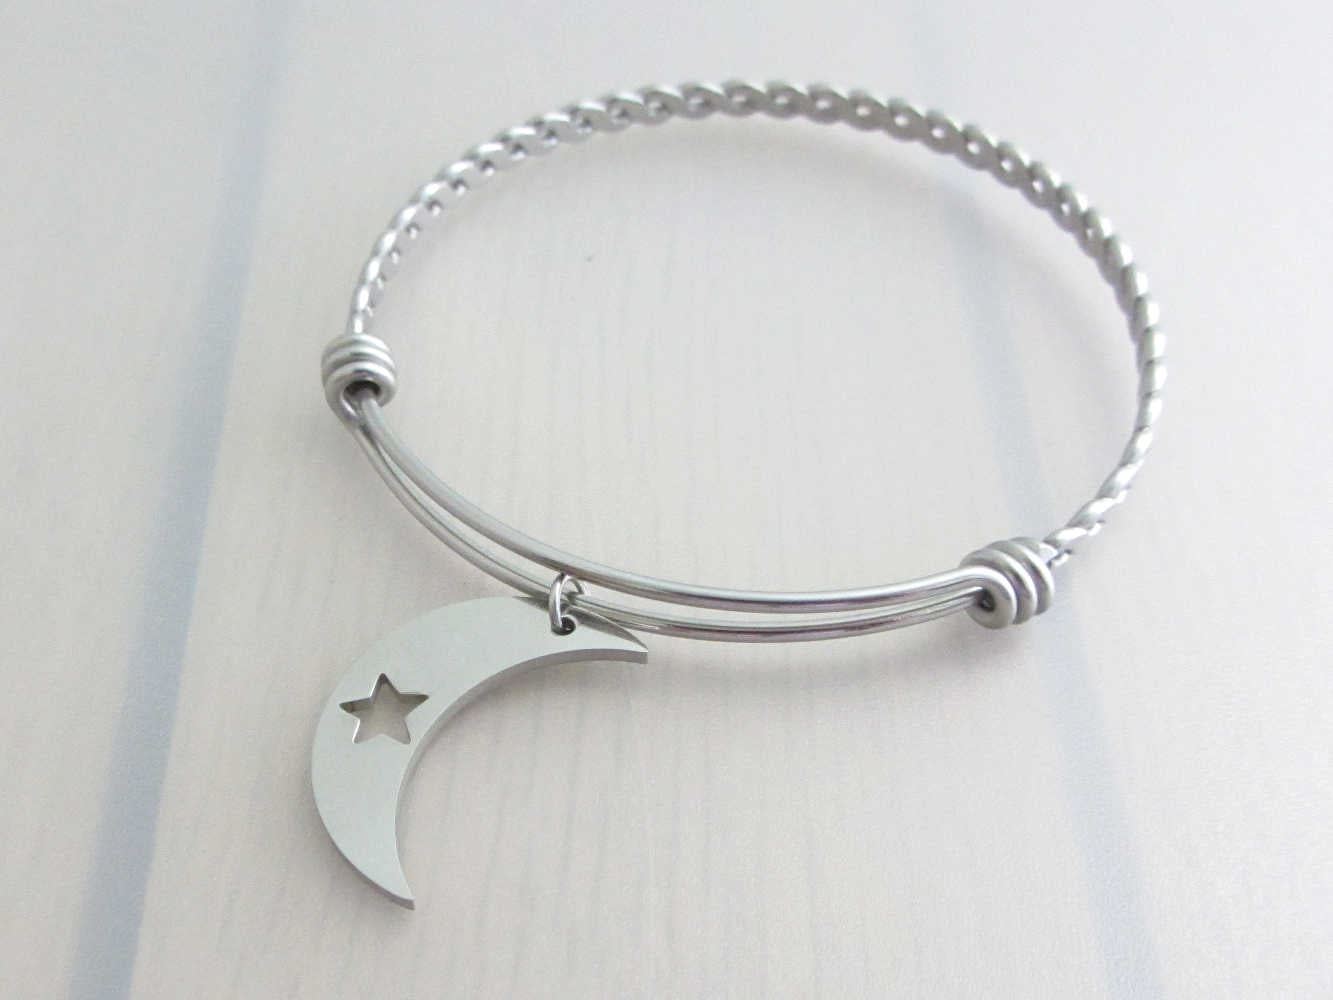 stainless steel crescent moon charm with cut out star on a bangle with braided twist pattern